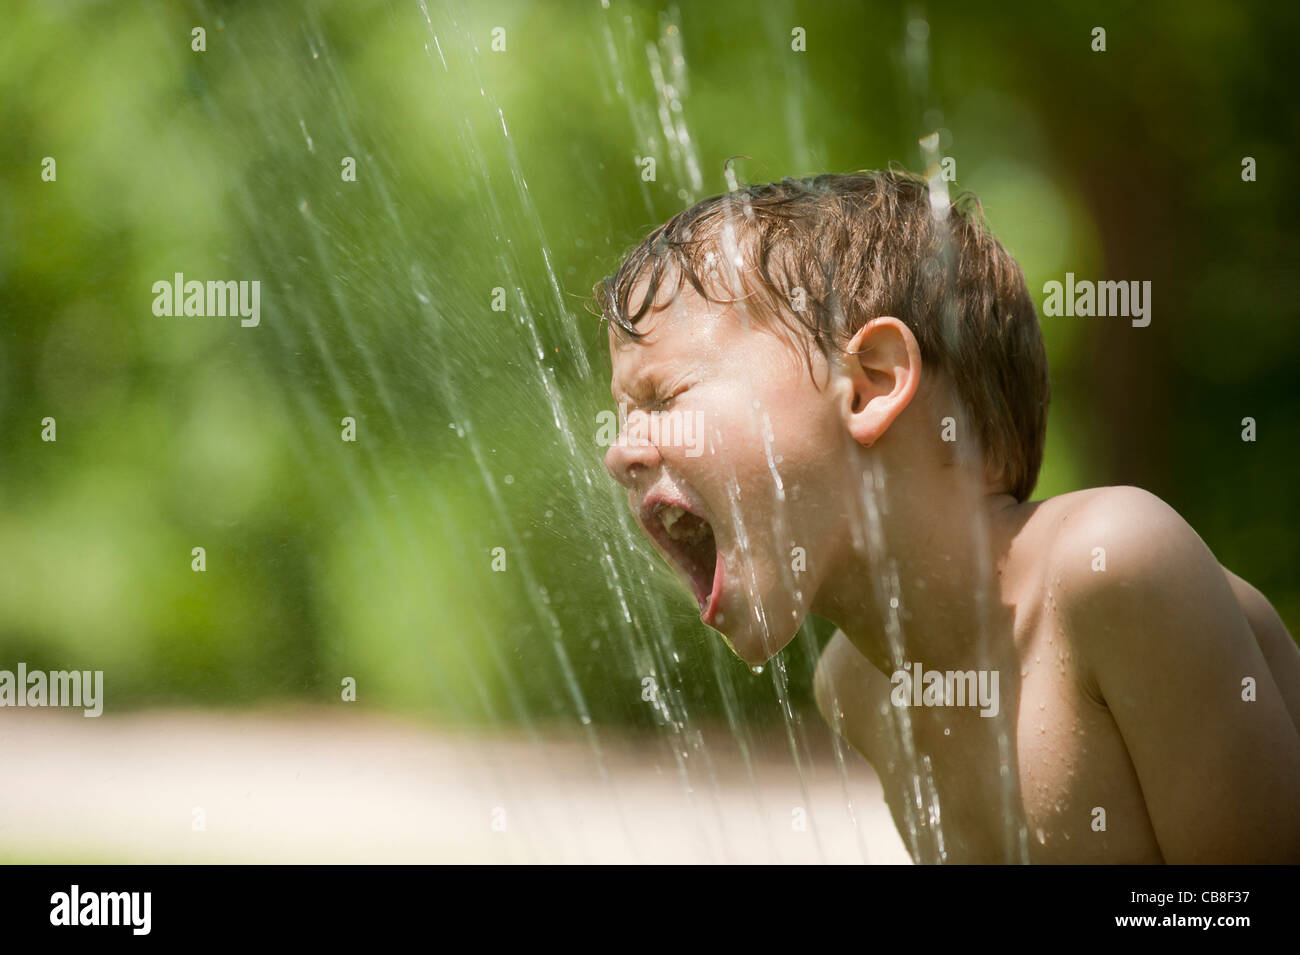 A boy tries to take a drink from a water sprinkler. - Stock Image